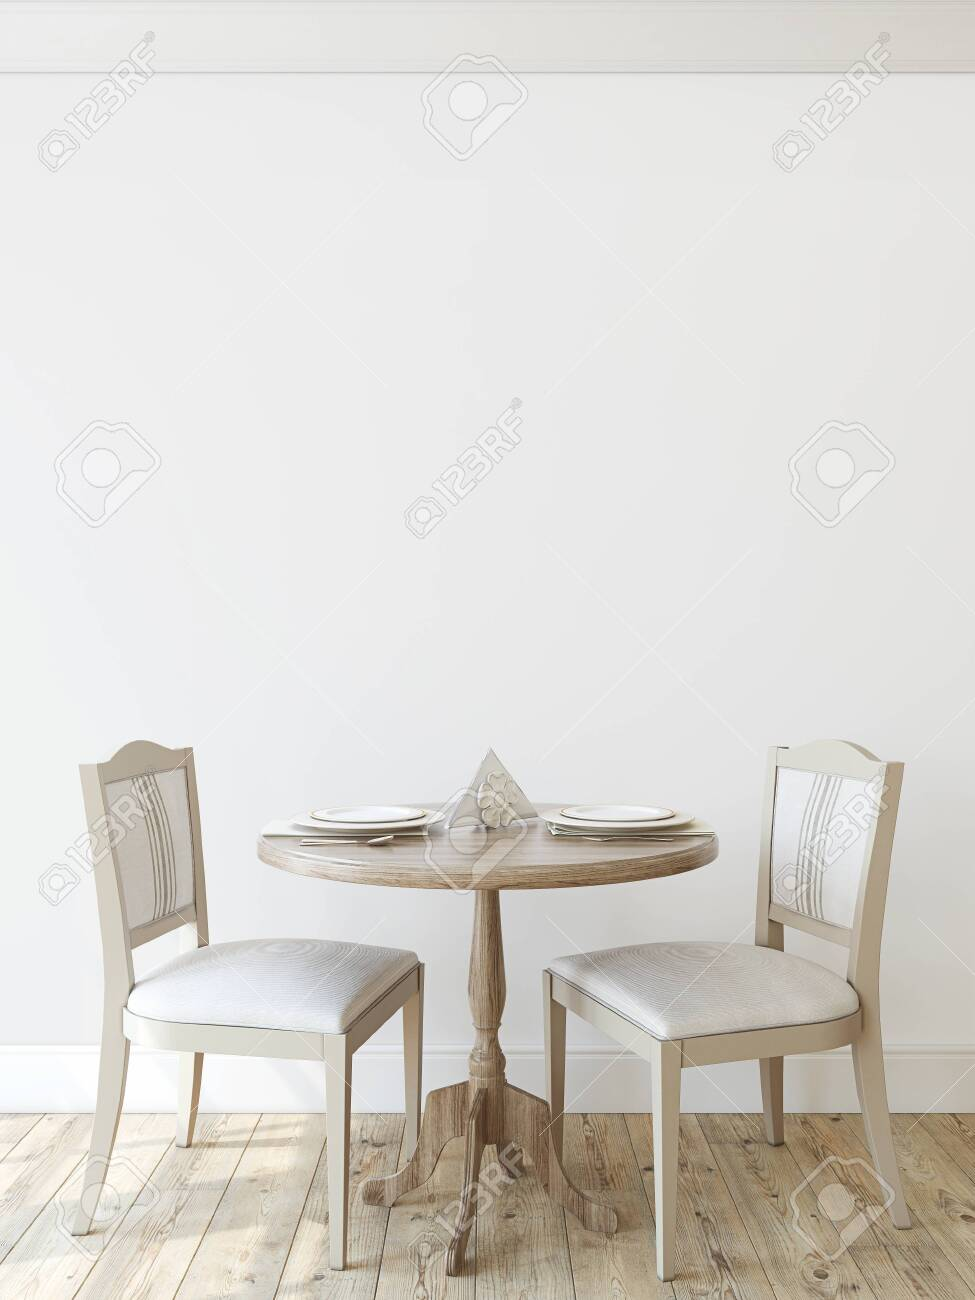 Modern dining-room. Interior mockup. Round table with two chairs near empty wall. 3d render. - 128722500